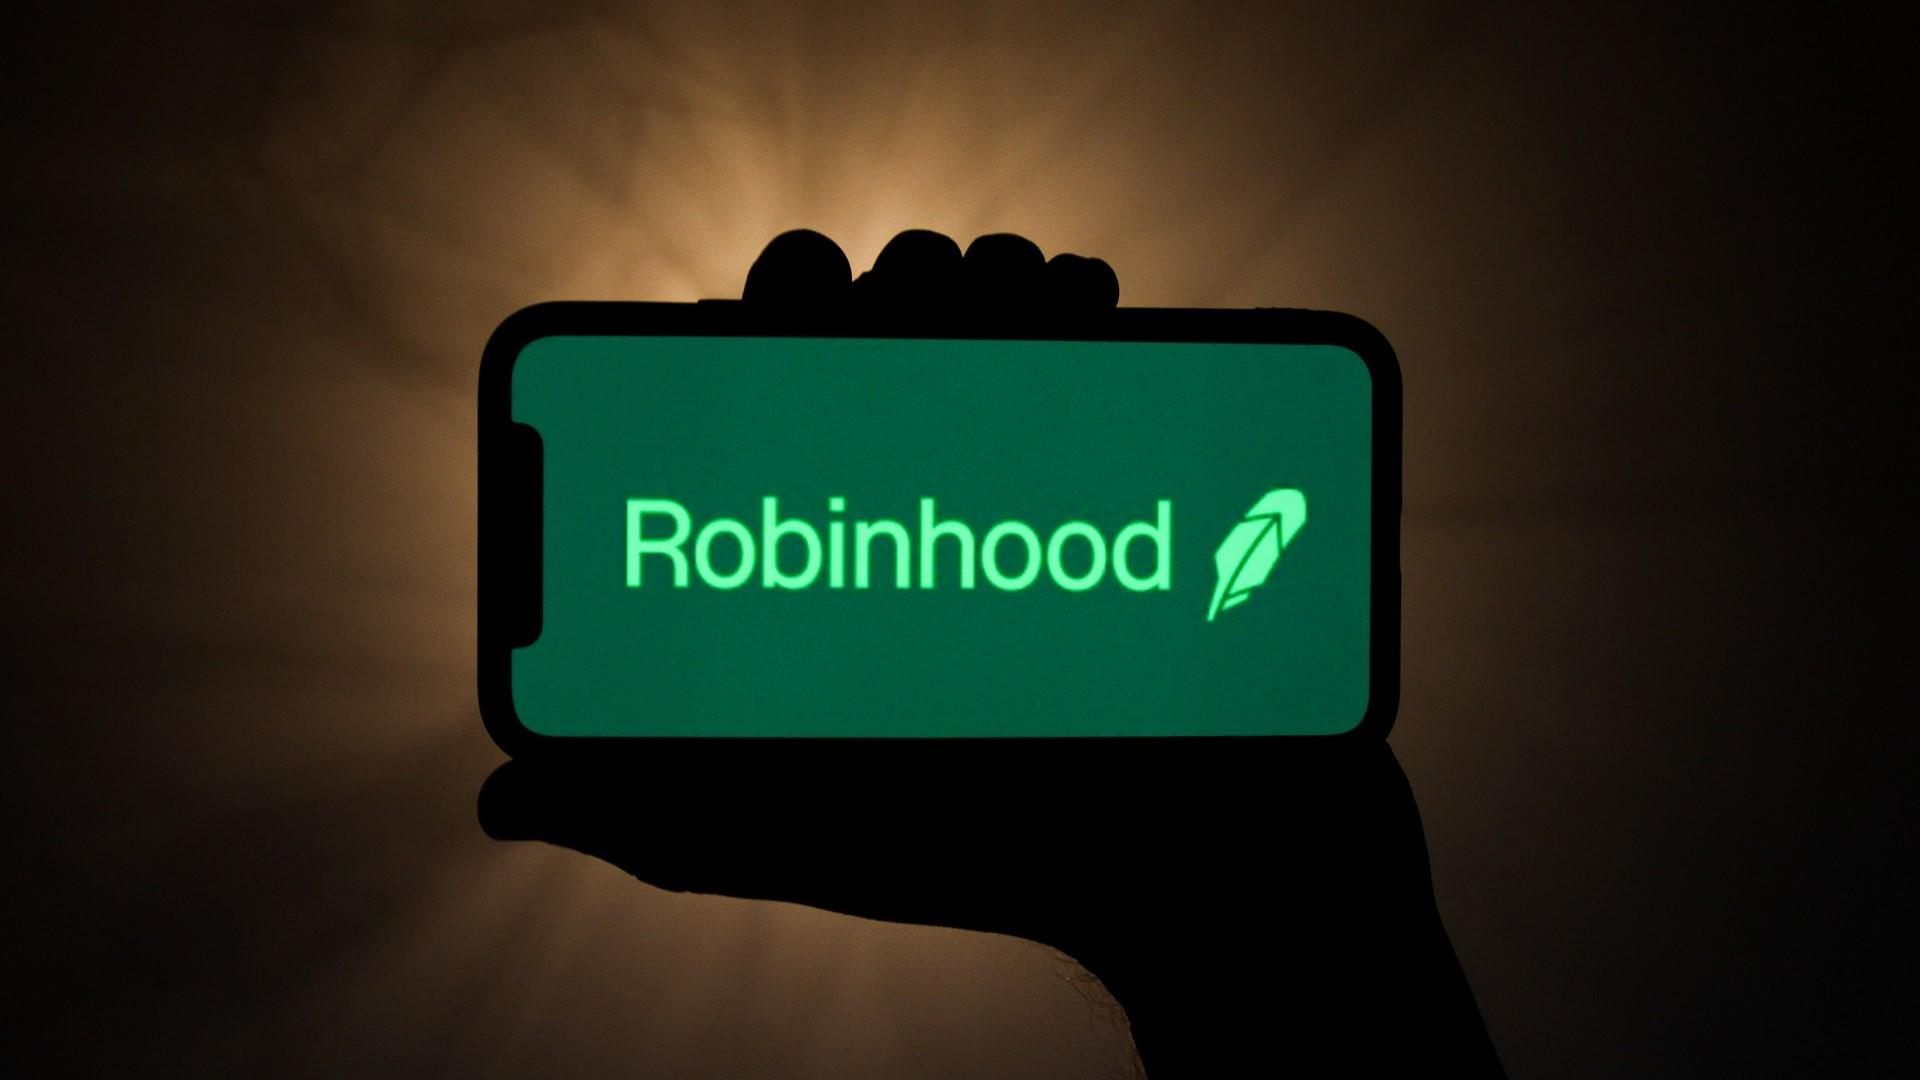 Robinhood Debuts Much Anticipated IPO — But Experts Warn To Take Caution